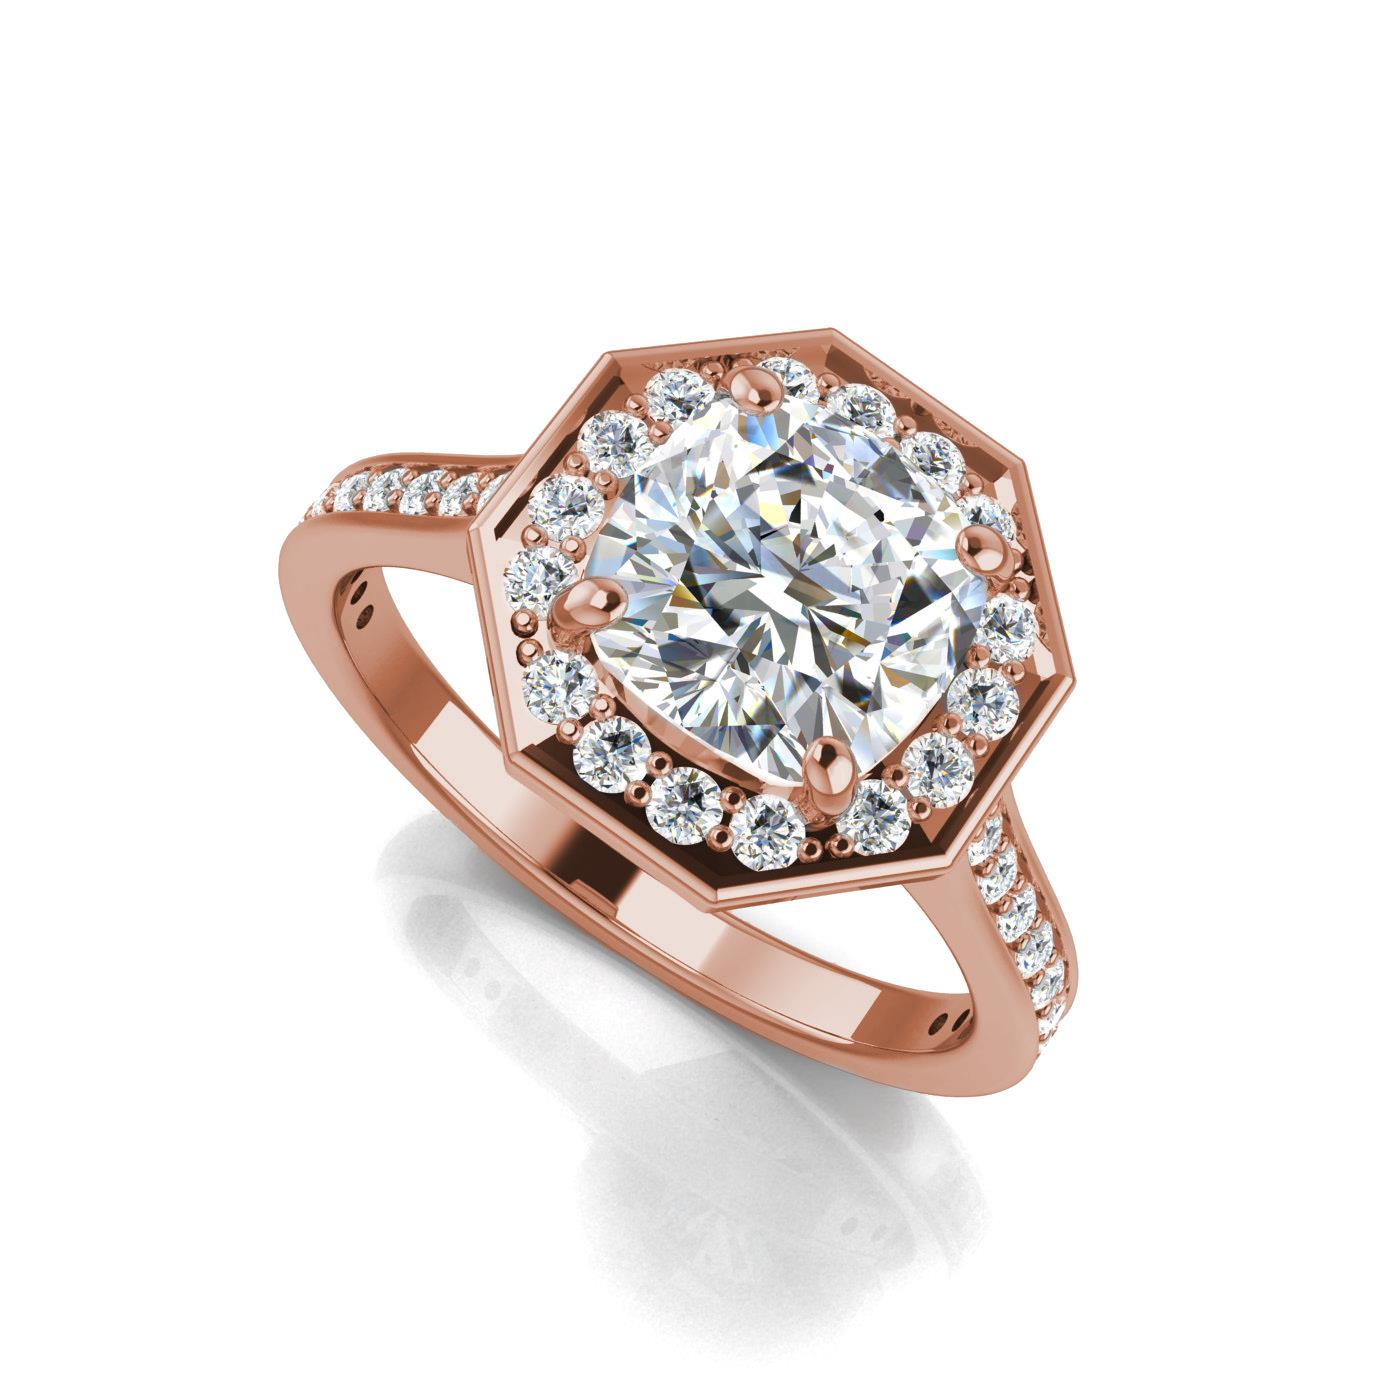 extraordinary cut graff stunning diamond cushion gia upon ring ct price request carats products